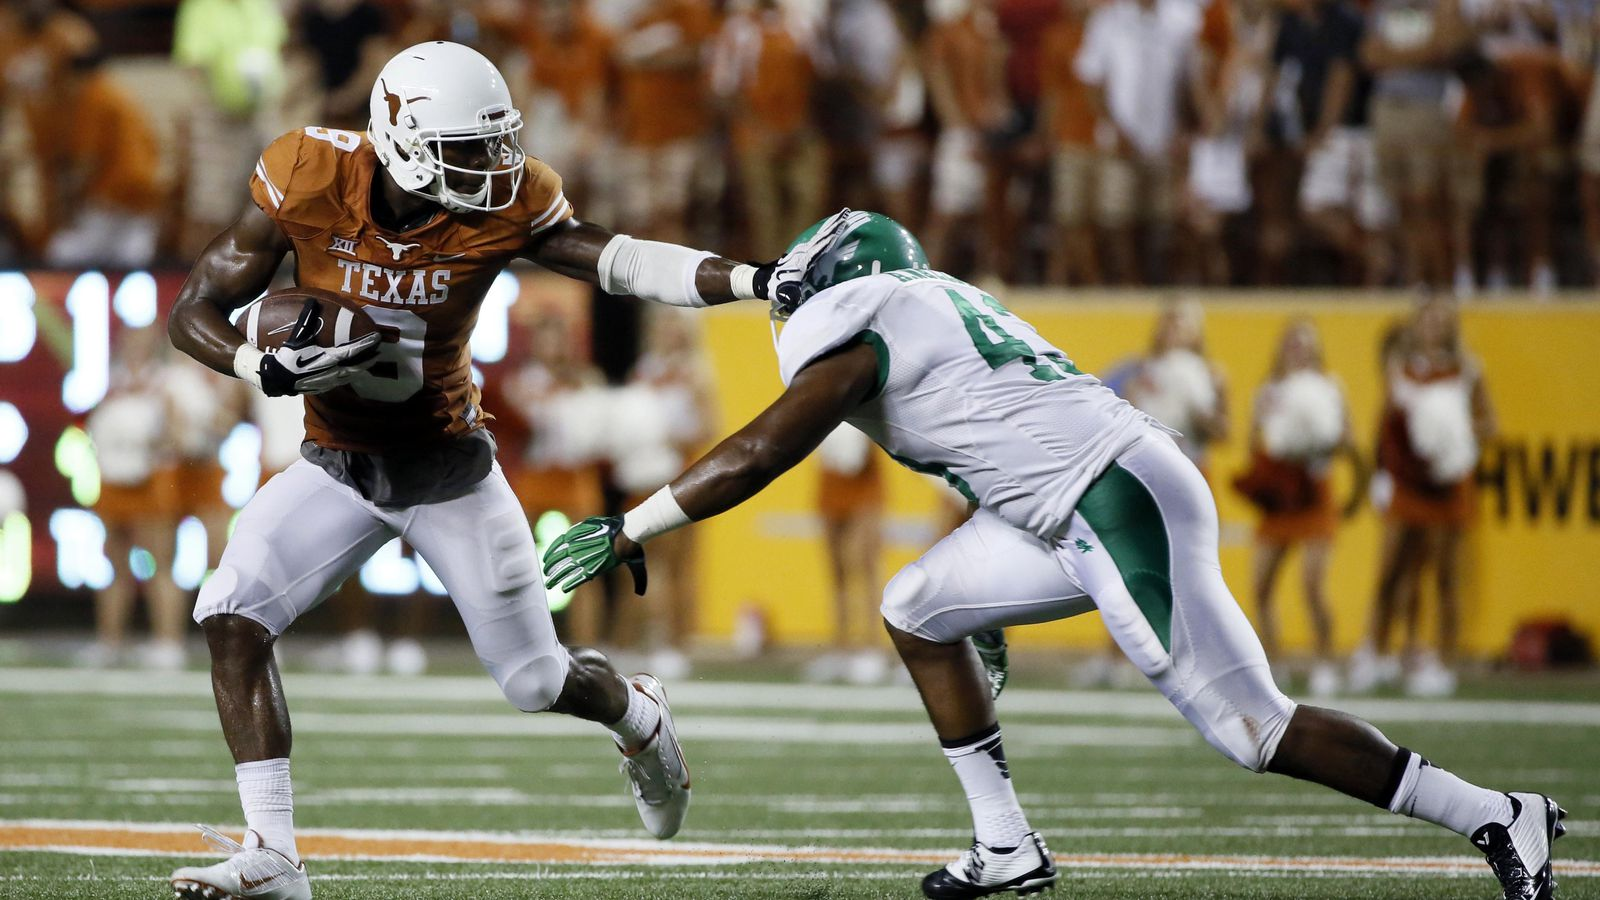 Get the latest Texas Longhorns news scores stats standings rumors and more from ESPN